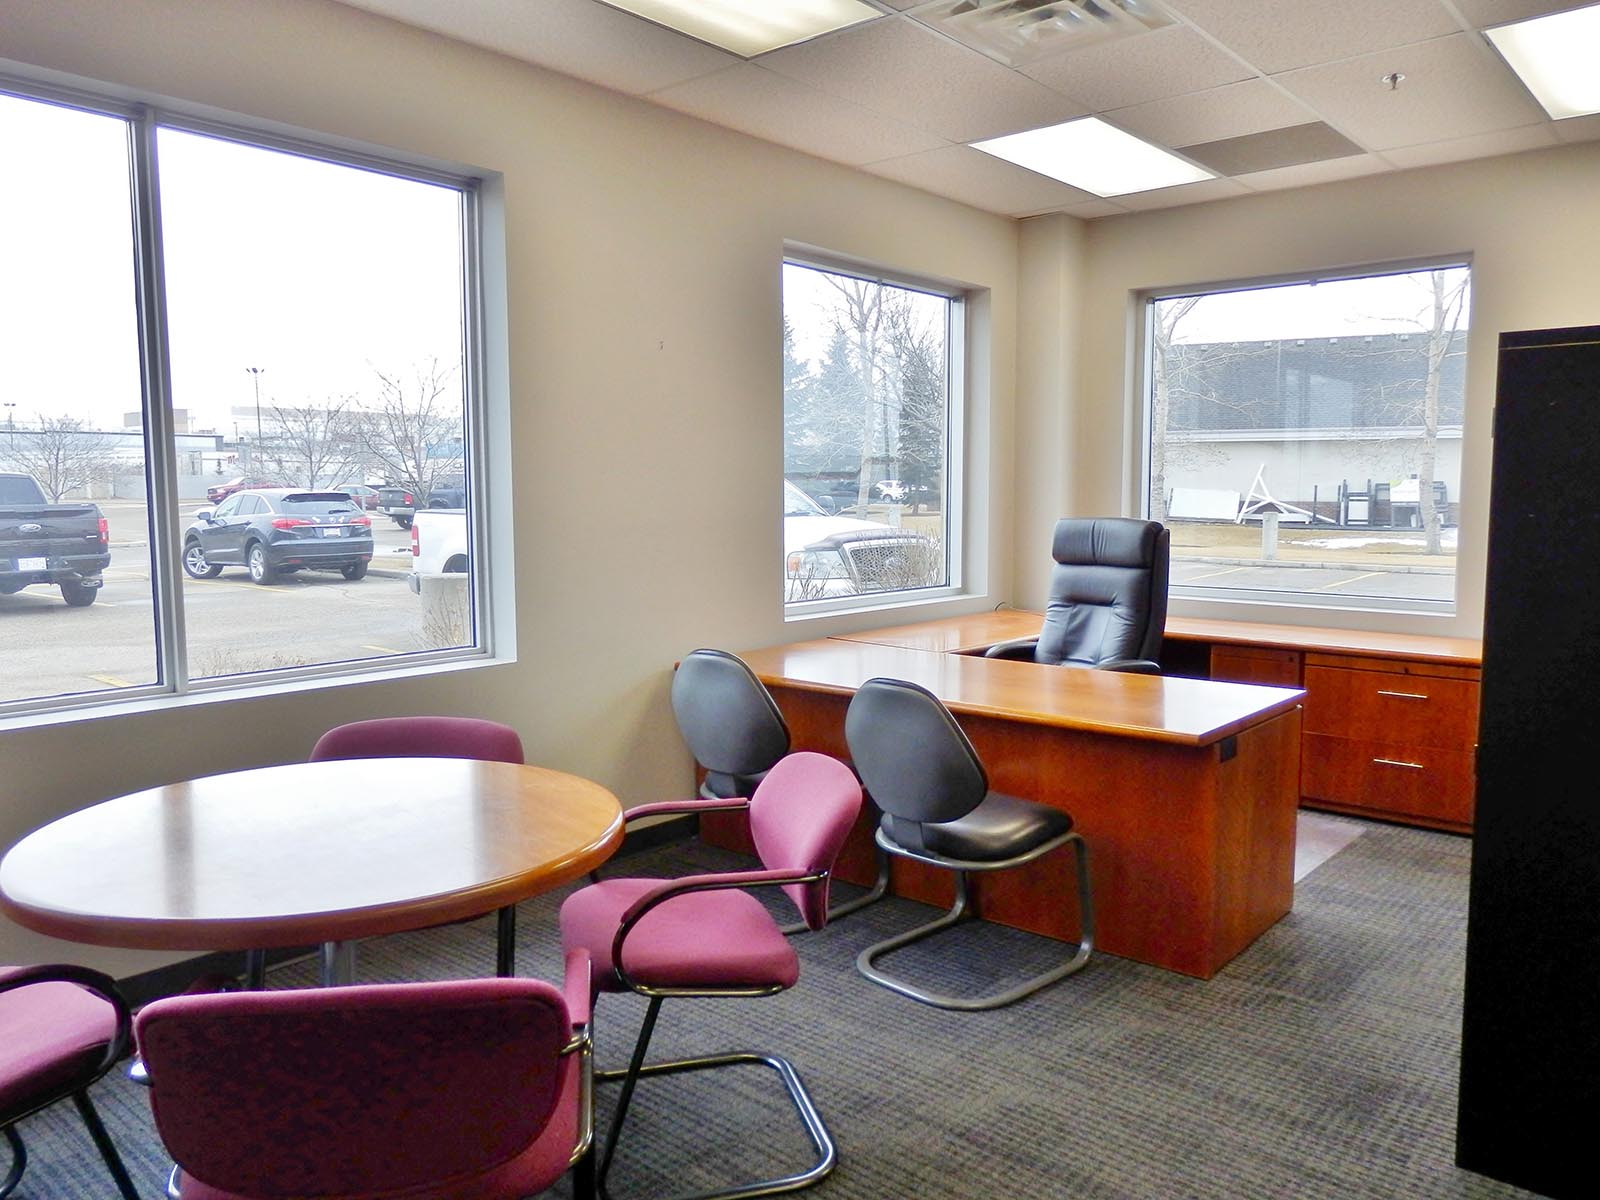 What are Some Things to Look Out for When Renting Office Space for a Startup?